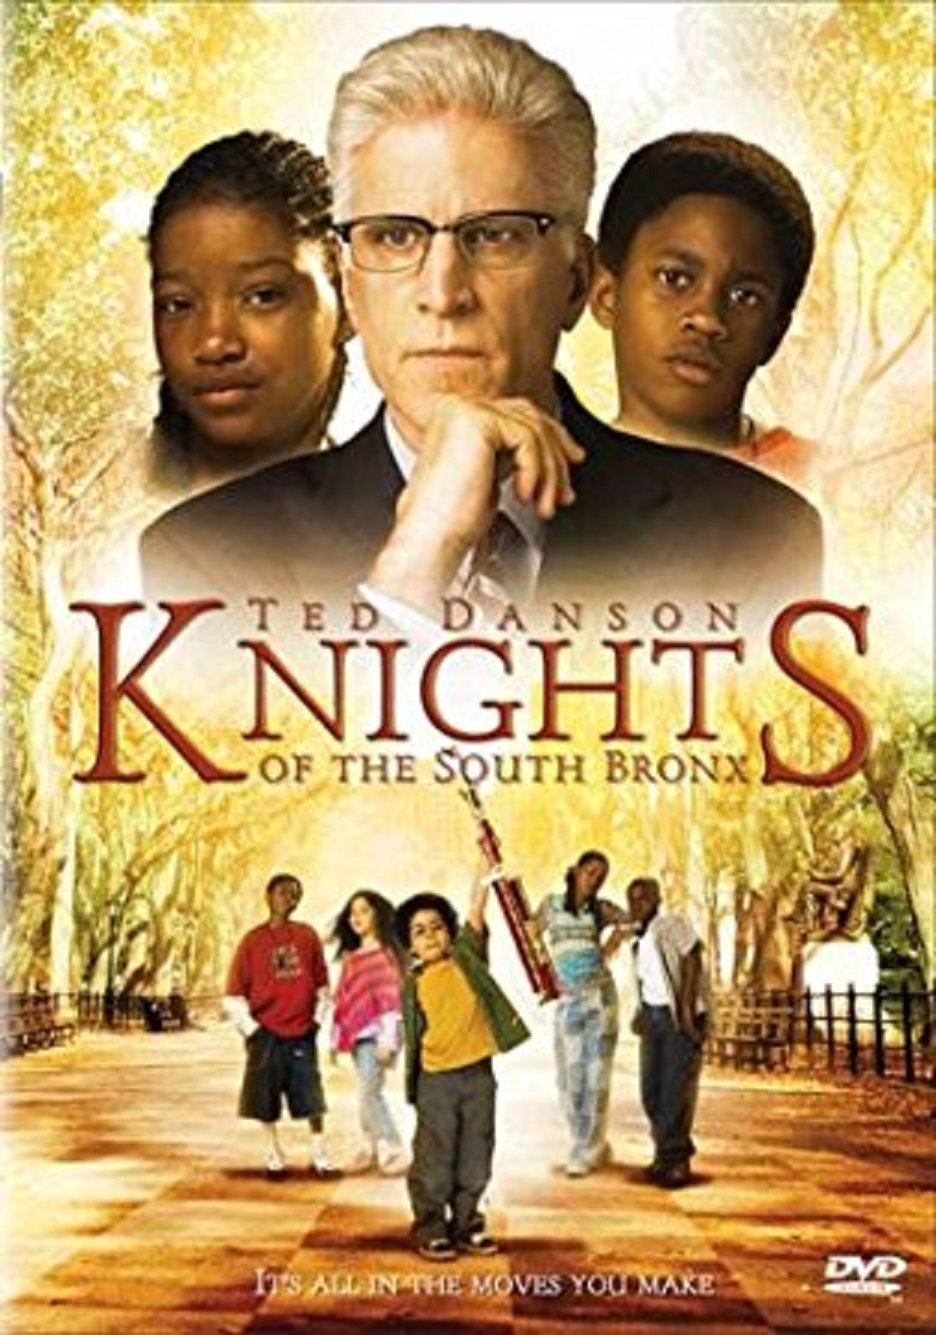 Knights of the South Bronx DVD Extremely Rare. Gift Quality